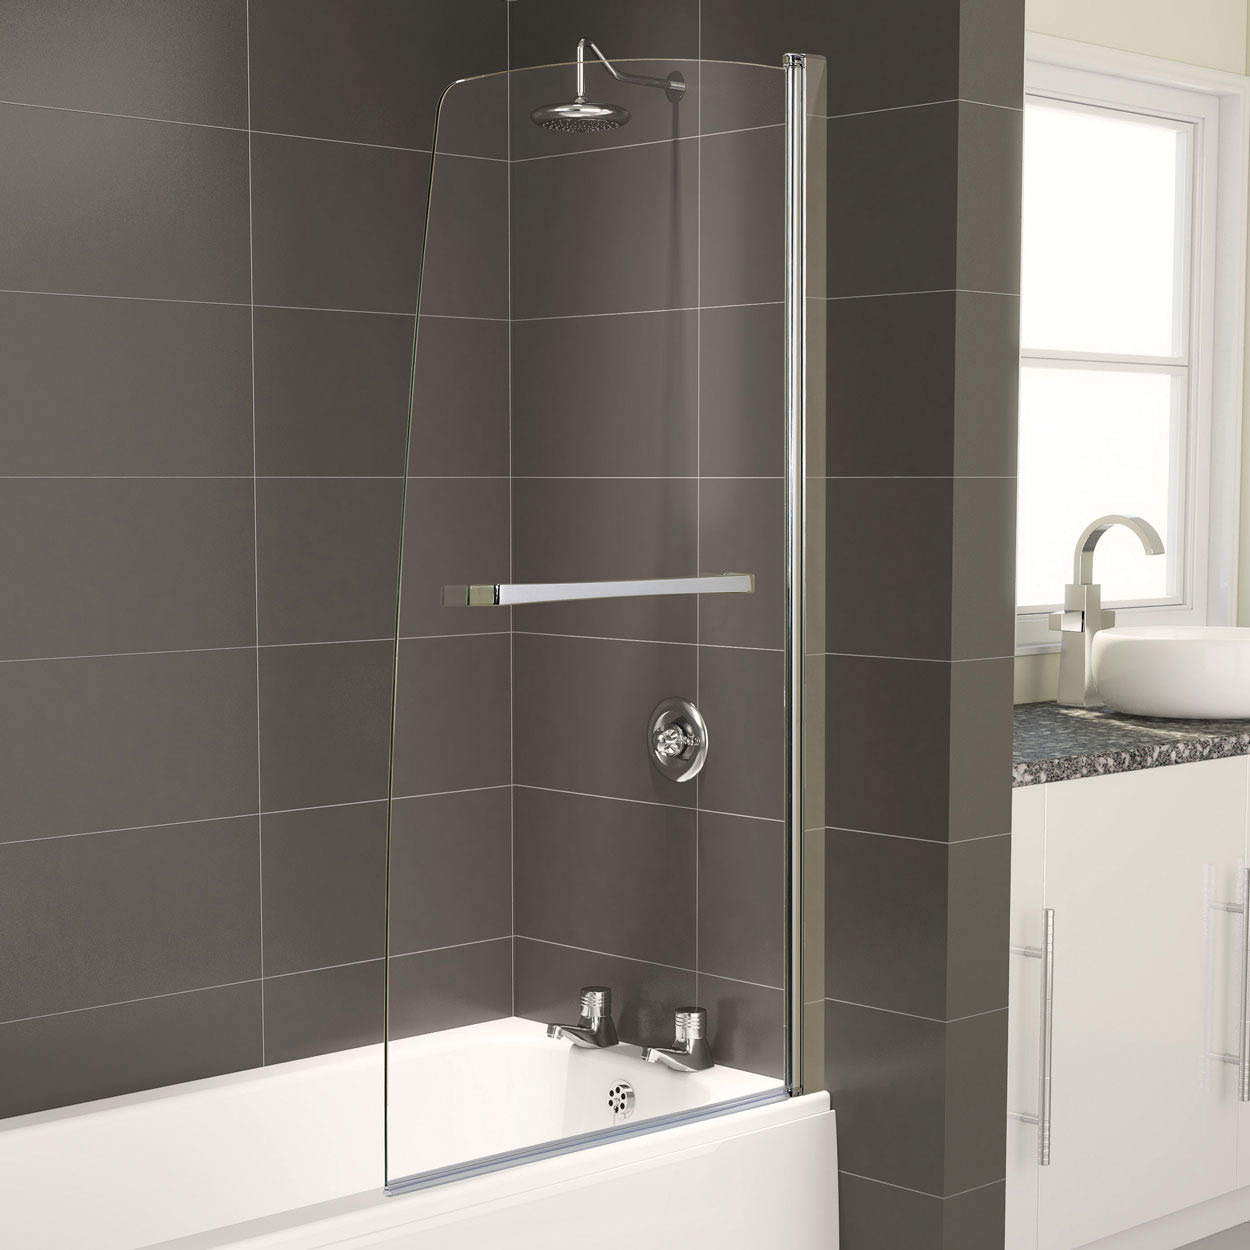 aqualux aqua 5 half frame bath screen 800 x 1500mm